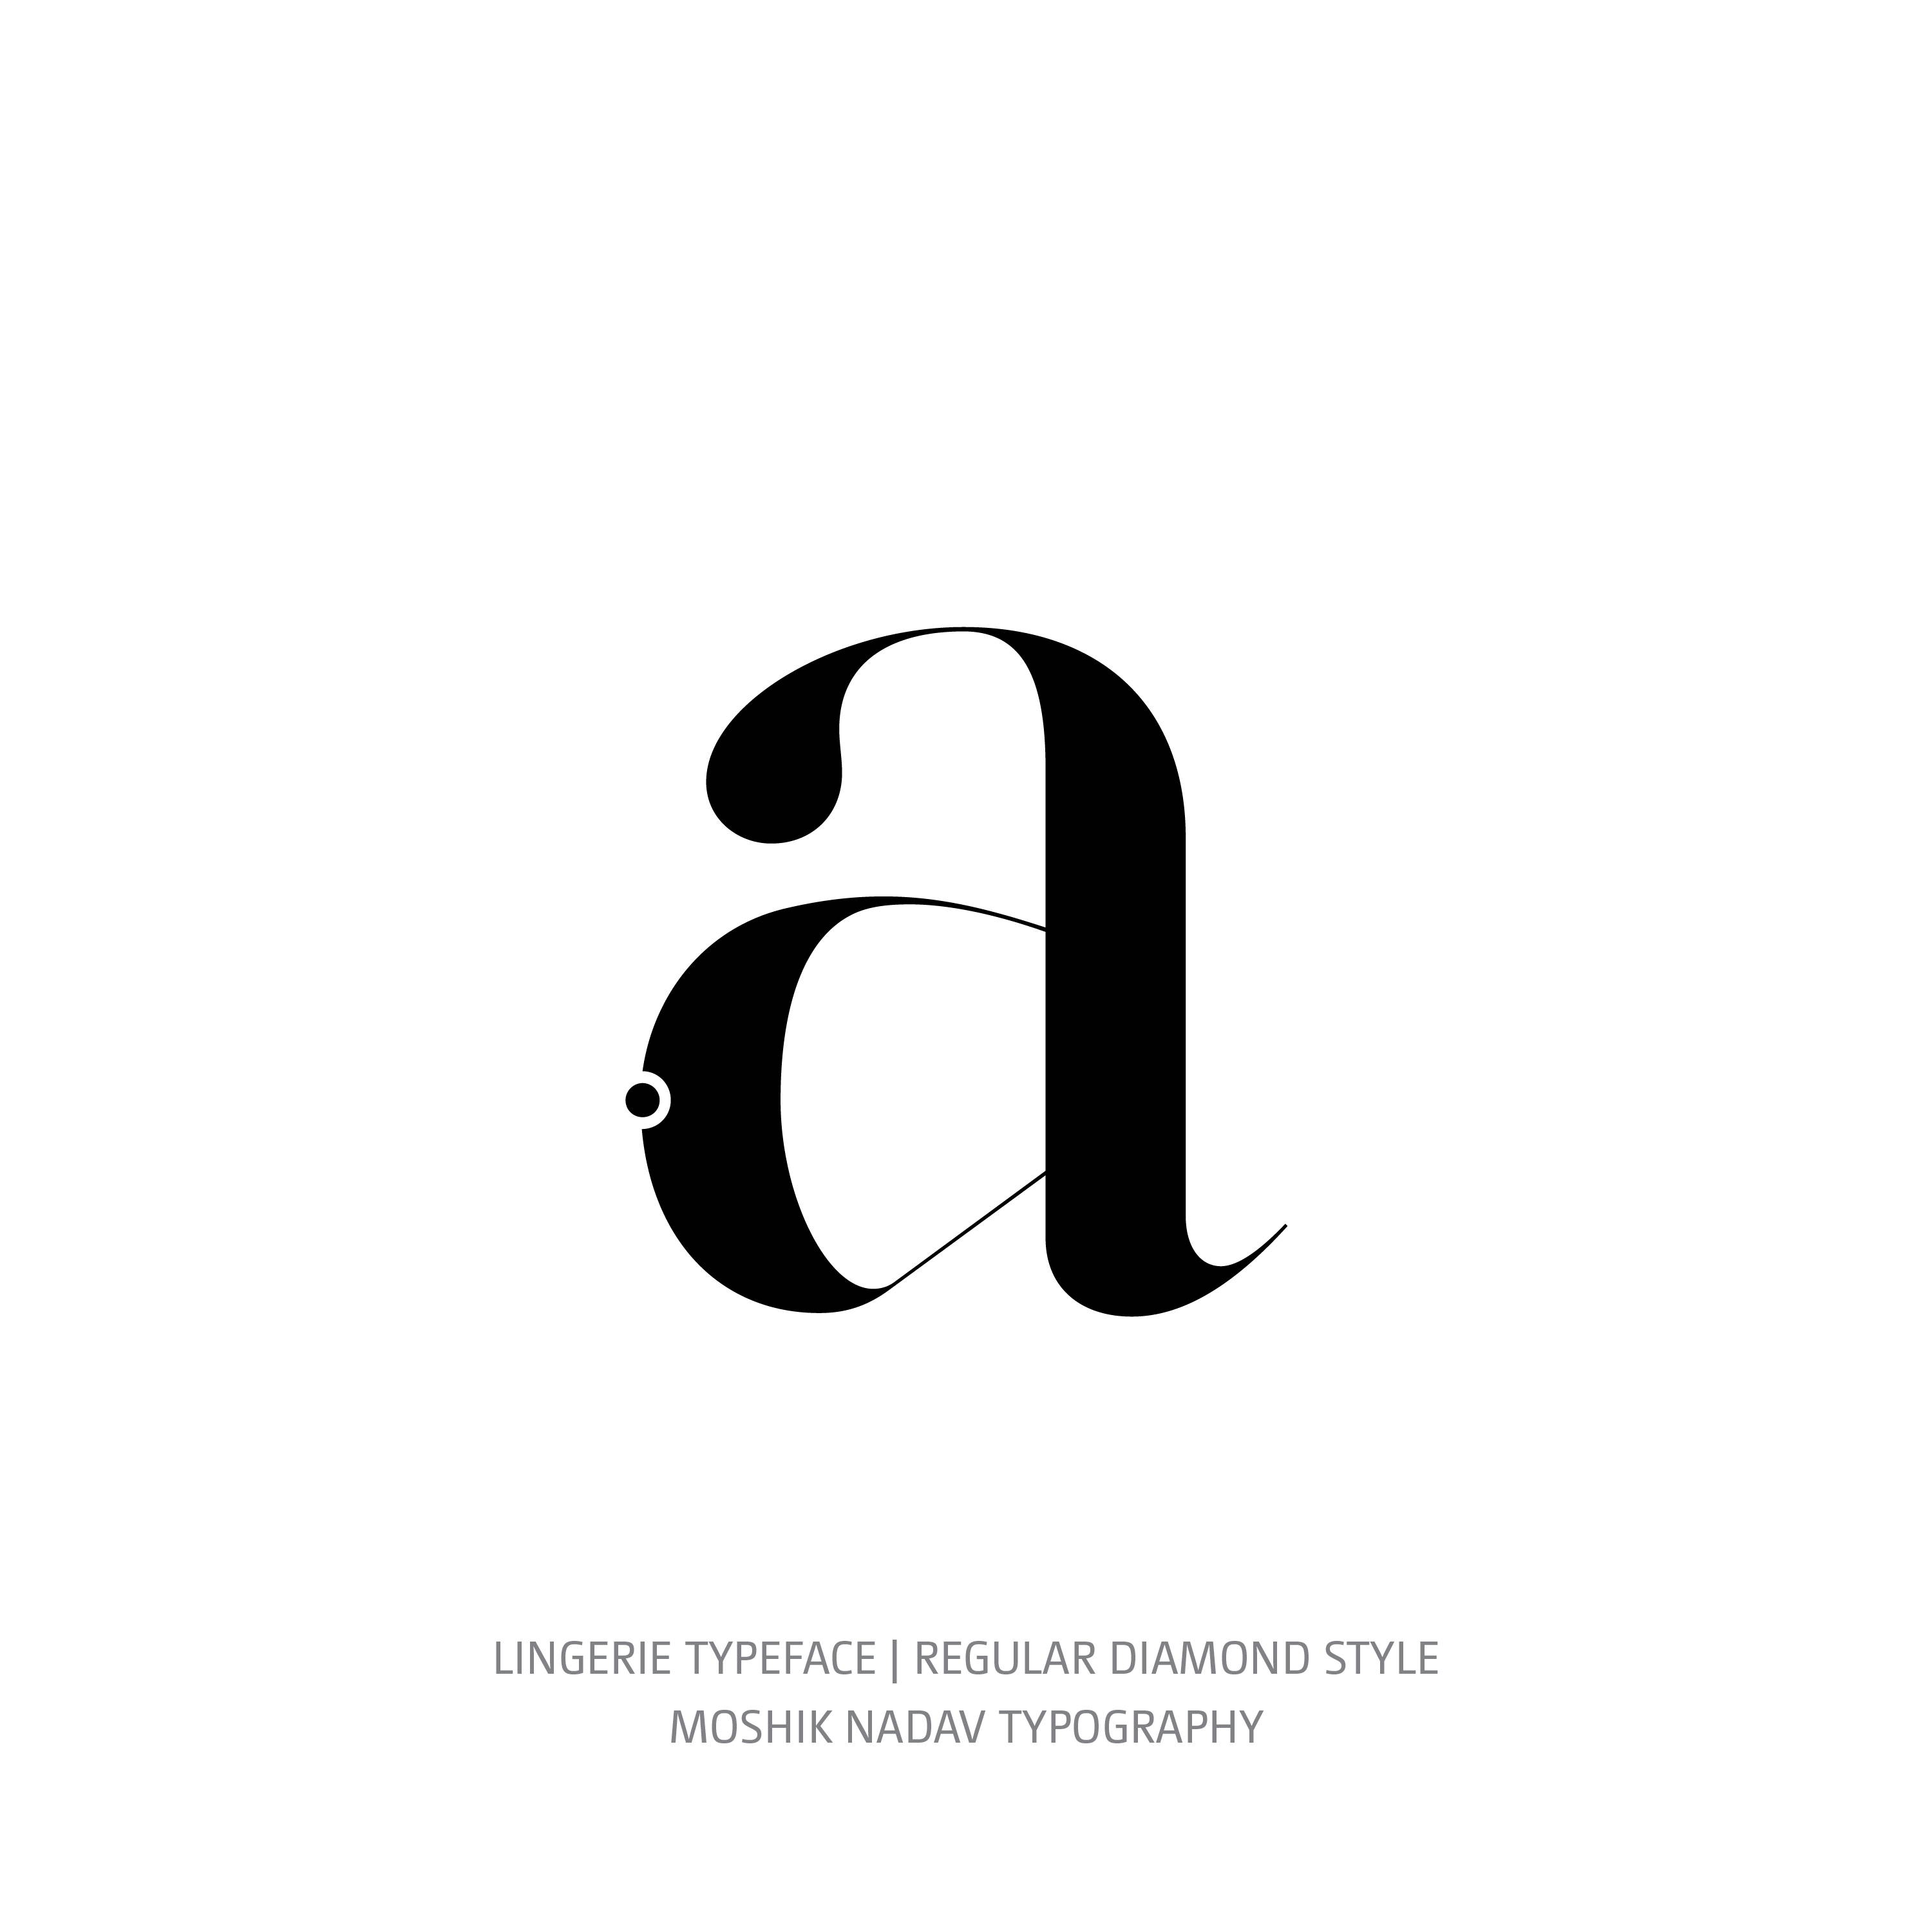 Lingerie Typeface Regular Diamond a